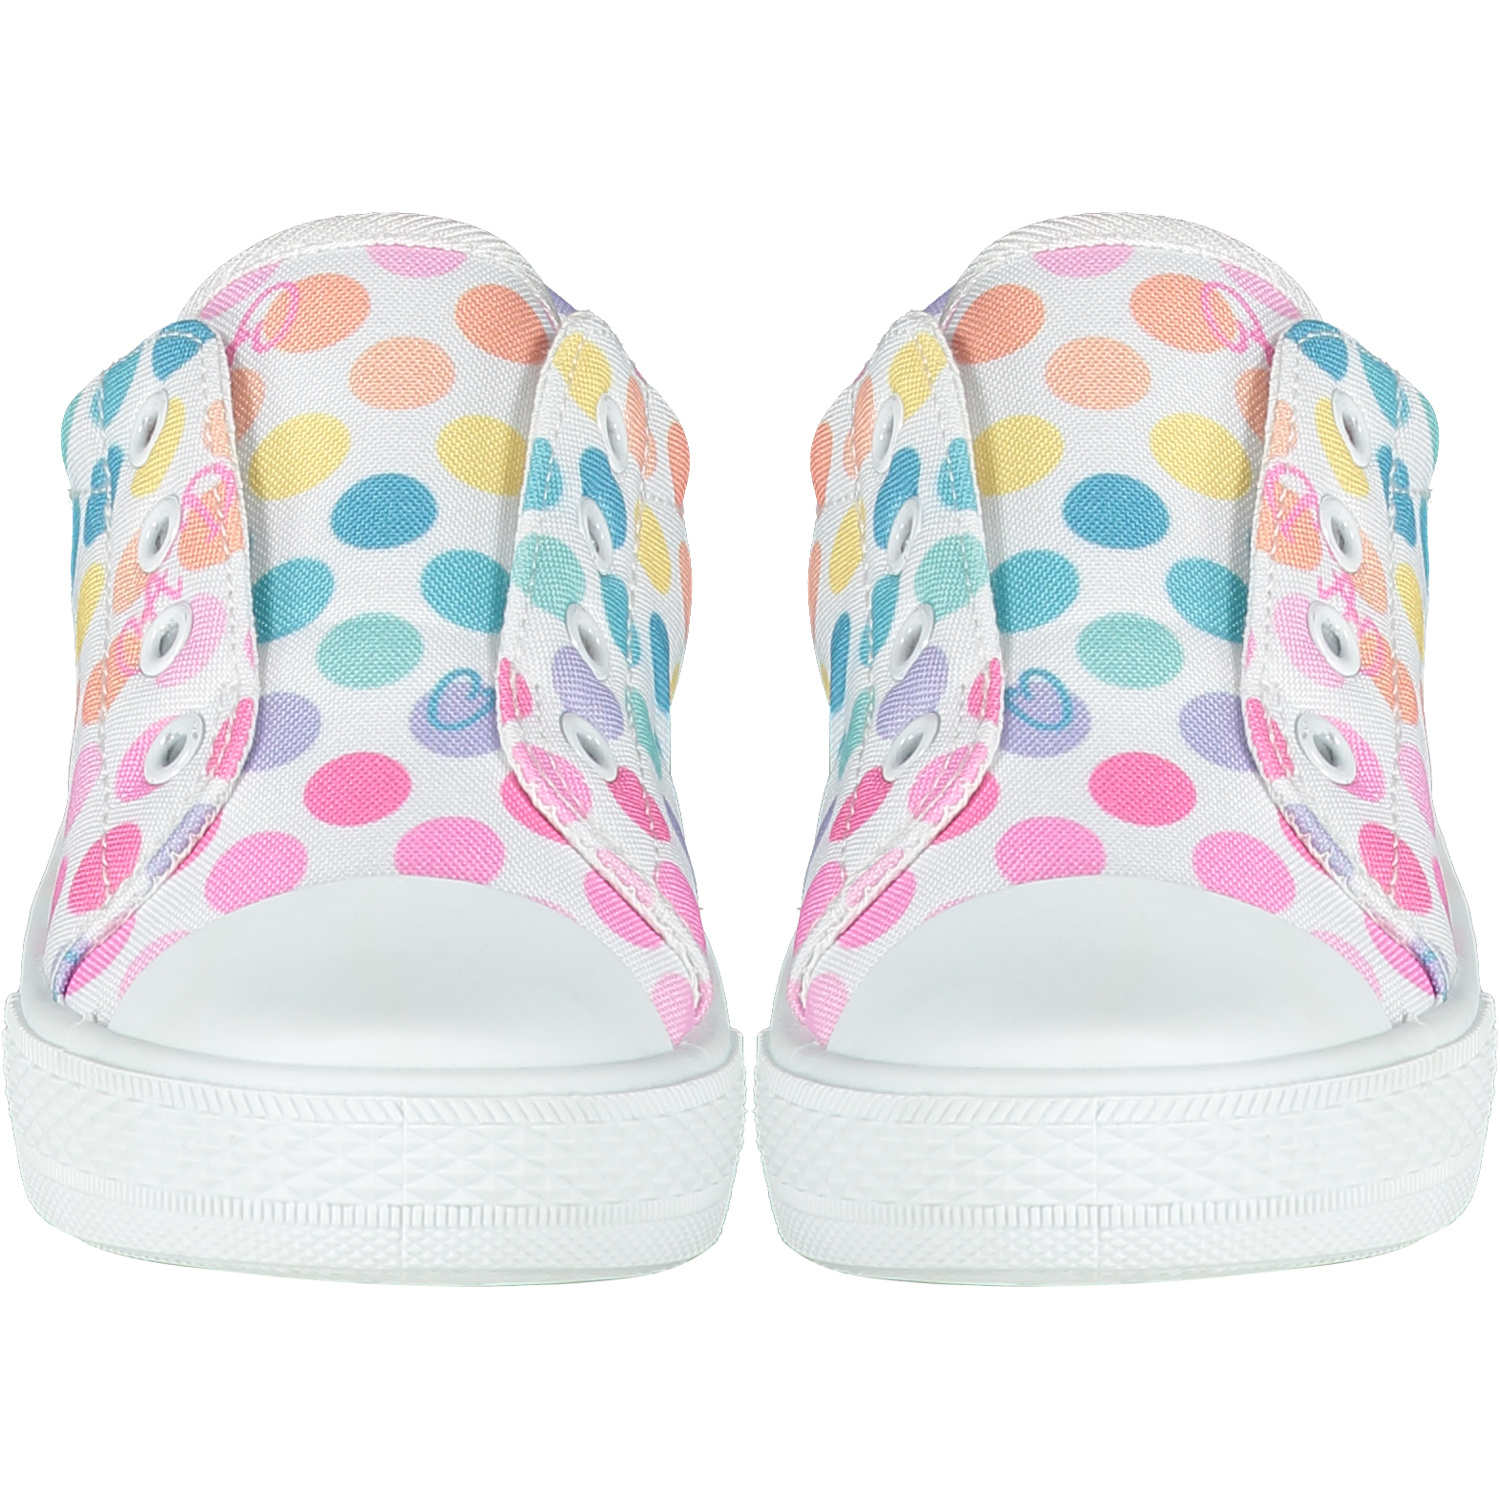 Adee Adee White Spot Printed Canvas Trainers